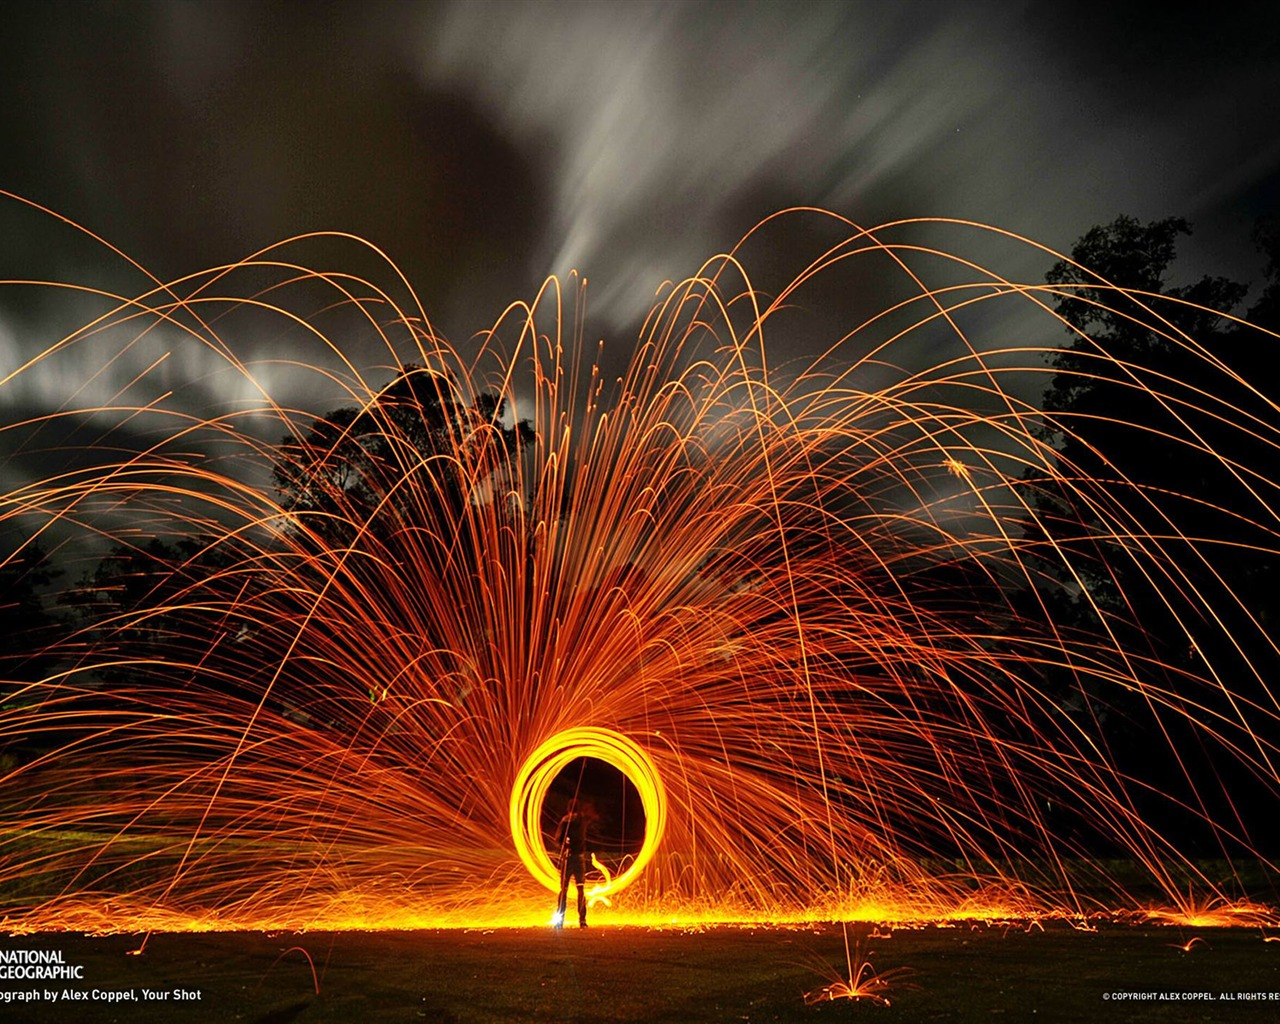 Wallpaper download national geographic - Circle Of Sparks National Geographic Wallpaper 1280x1024 Wallpaper Download